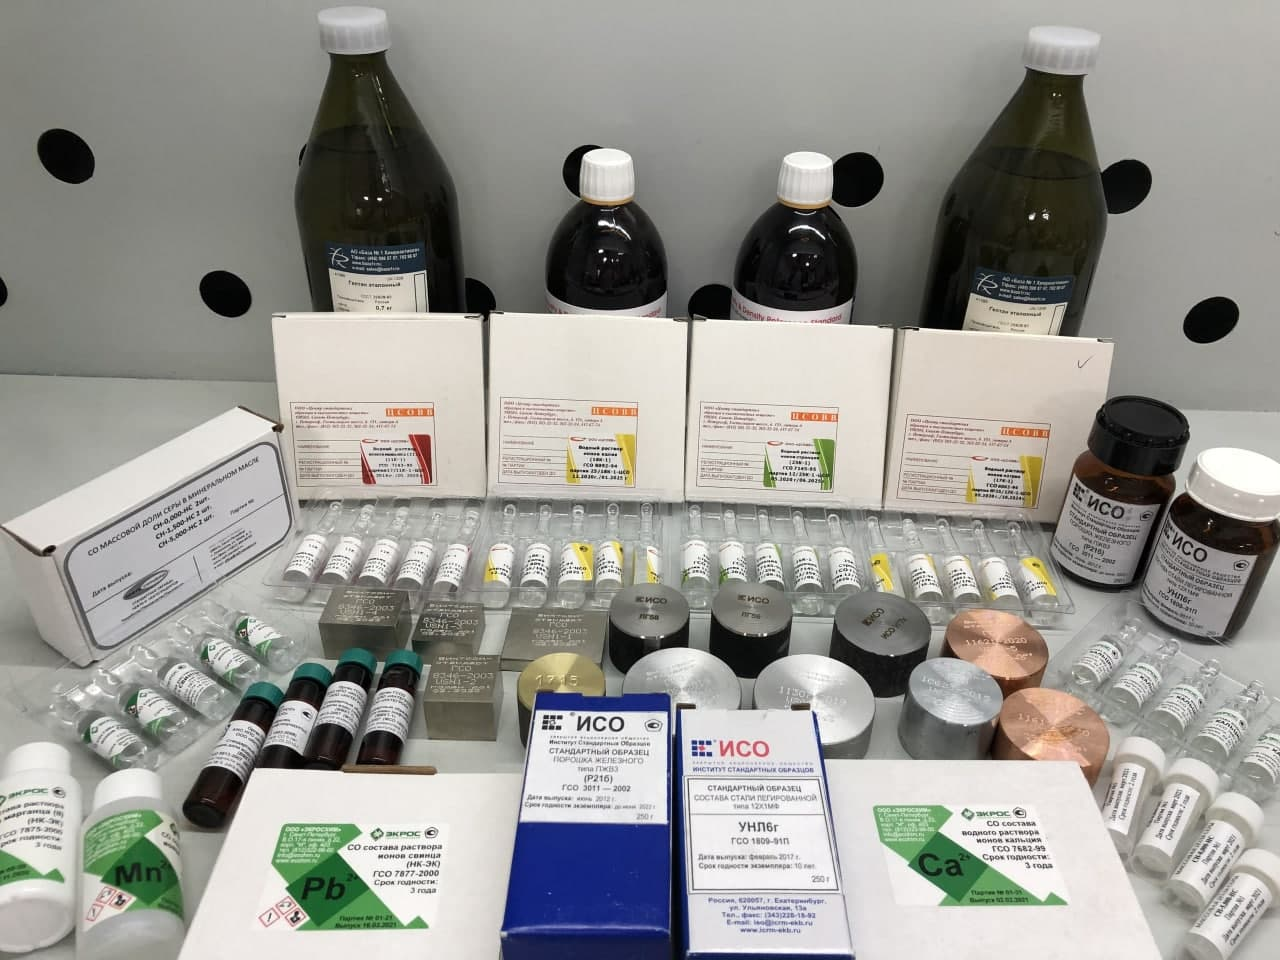 Standard samples were brought to the physicochemical laboratory